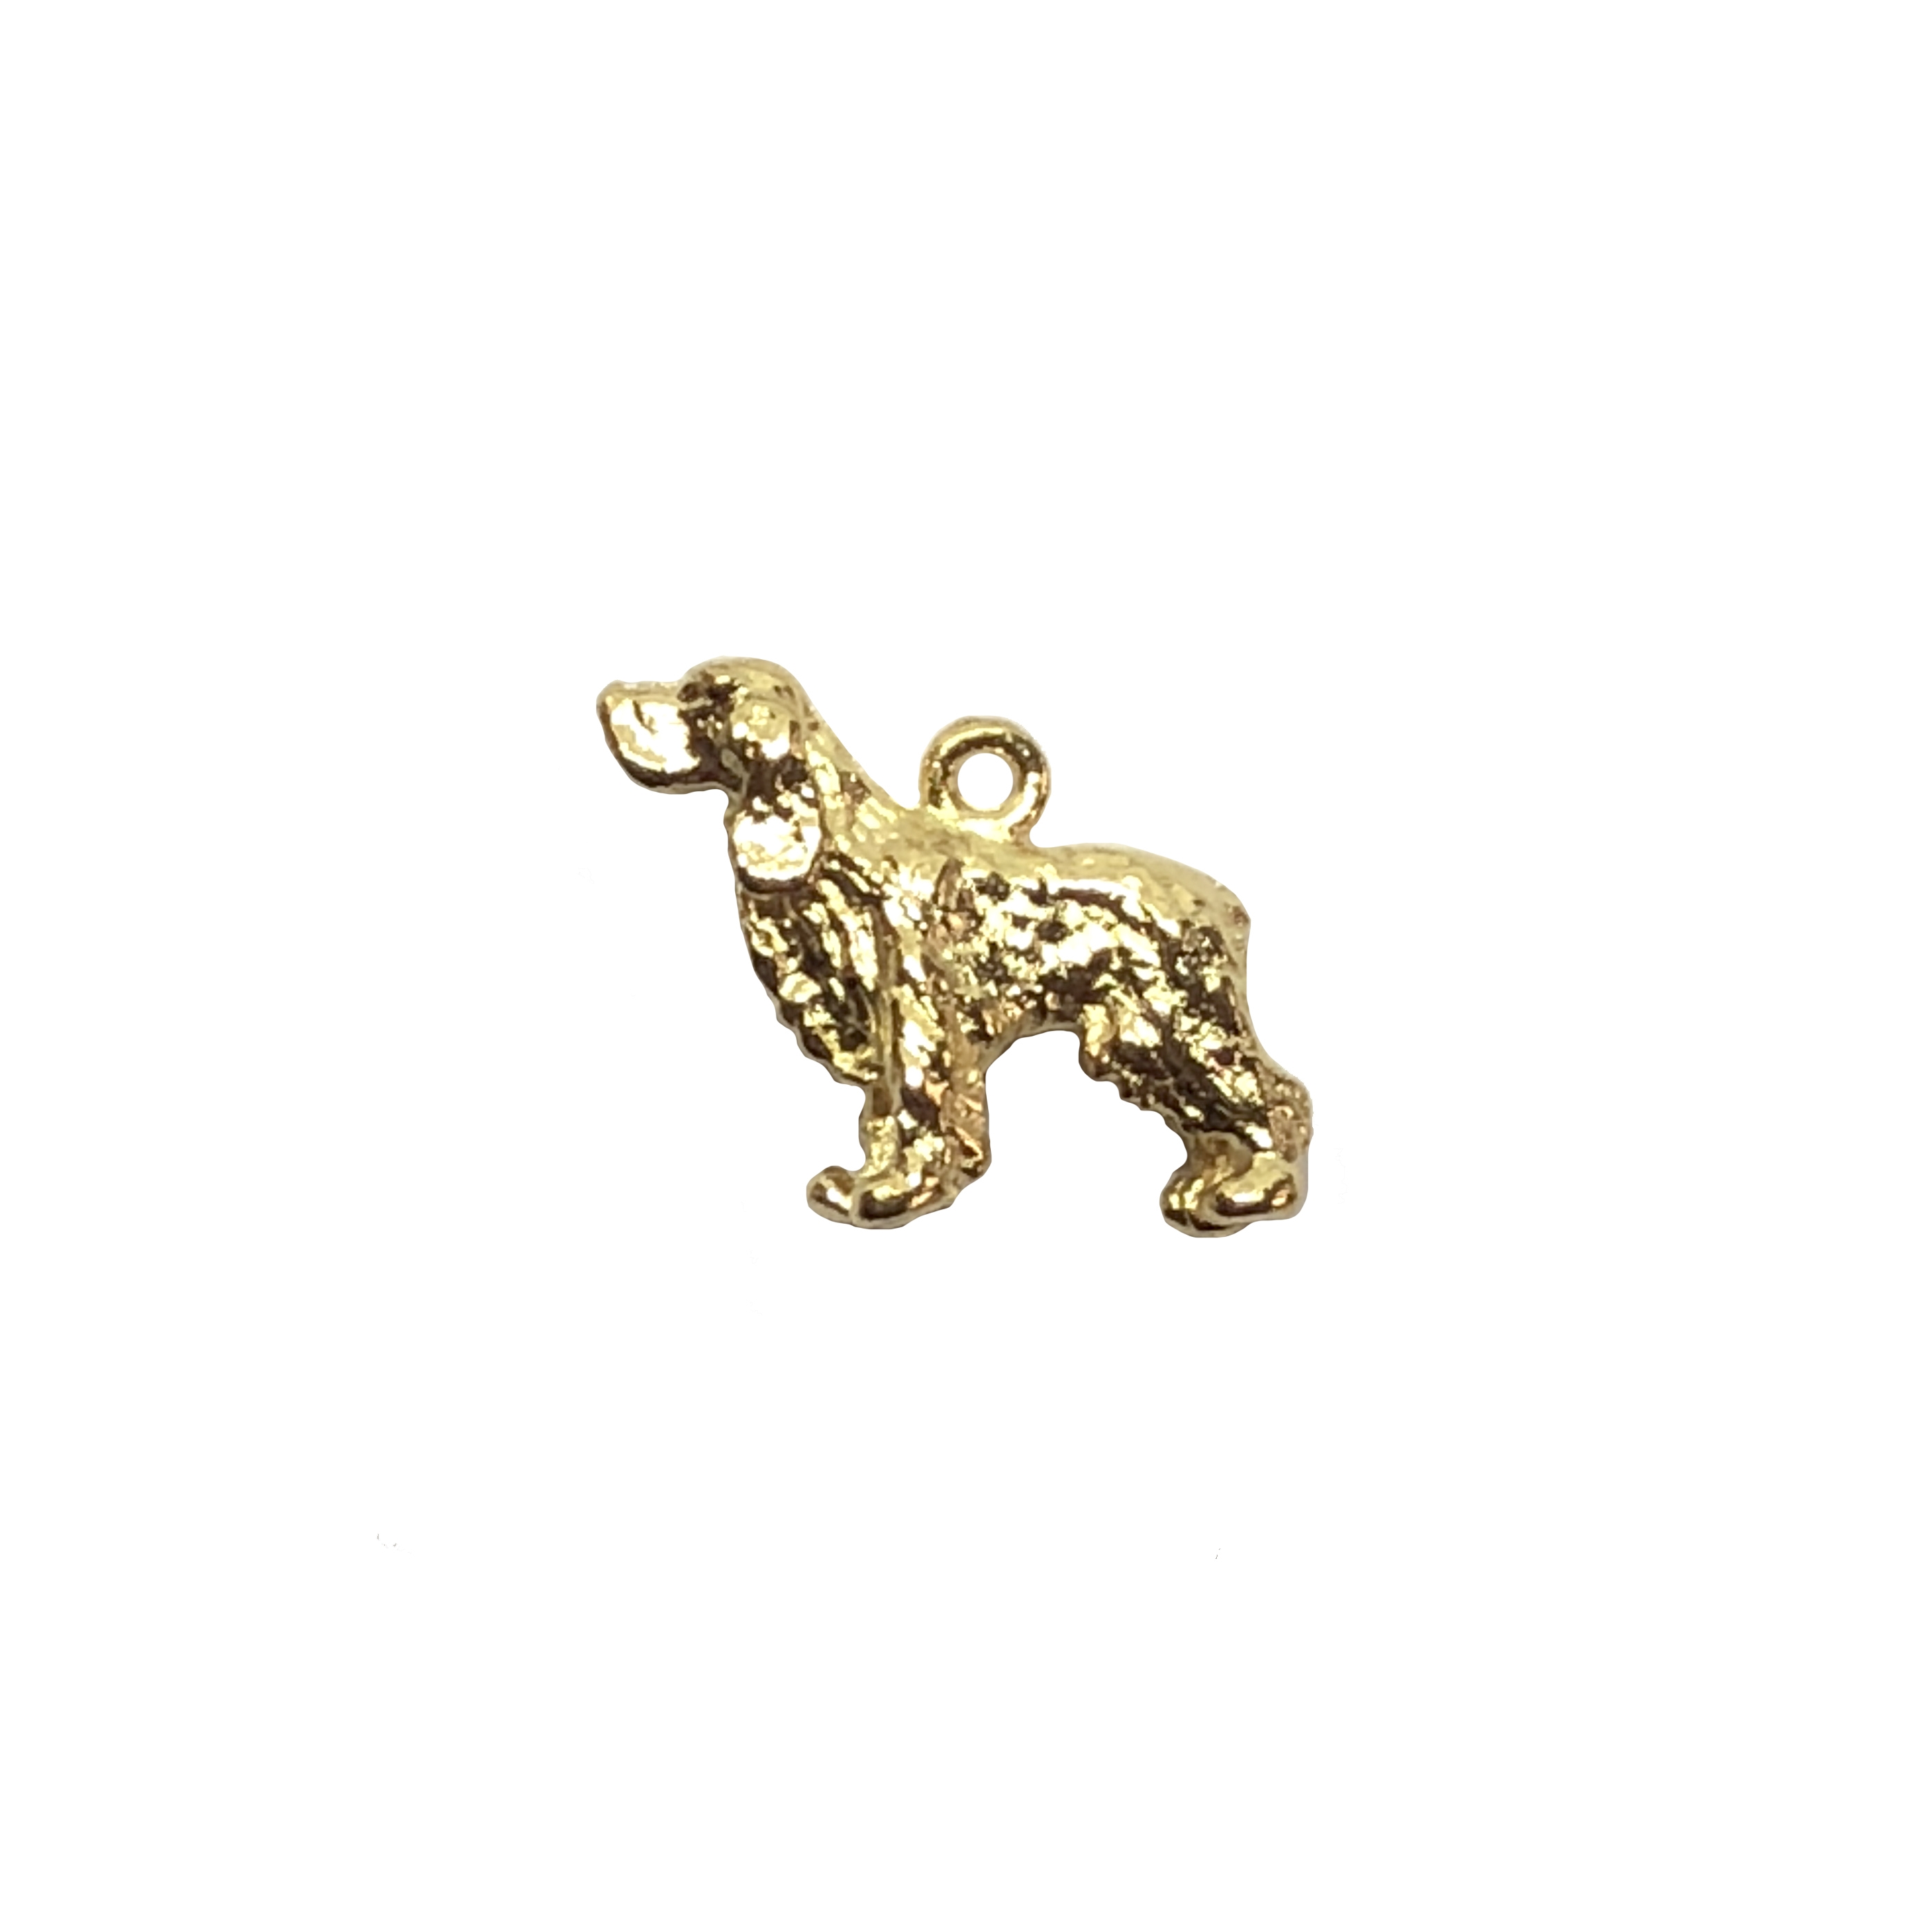 cocker spaniel charm, 22K gold finish pewter, B'sue by 1928, jewelry charm, dog, dog charm, charm, cocker spaniel, gold, lead free pewter, gold finish, US made, designer jewelry, vintage supplies, B'sue Boutiques, 12x11mm, 08531